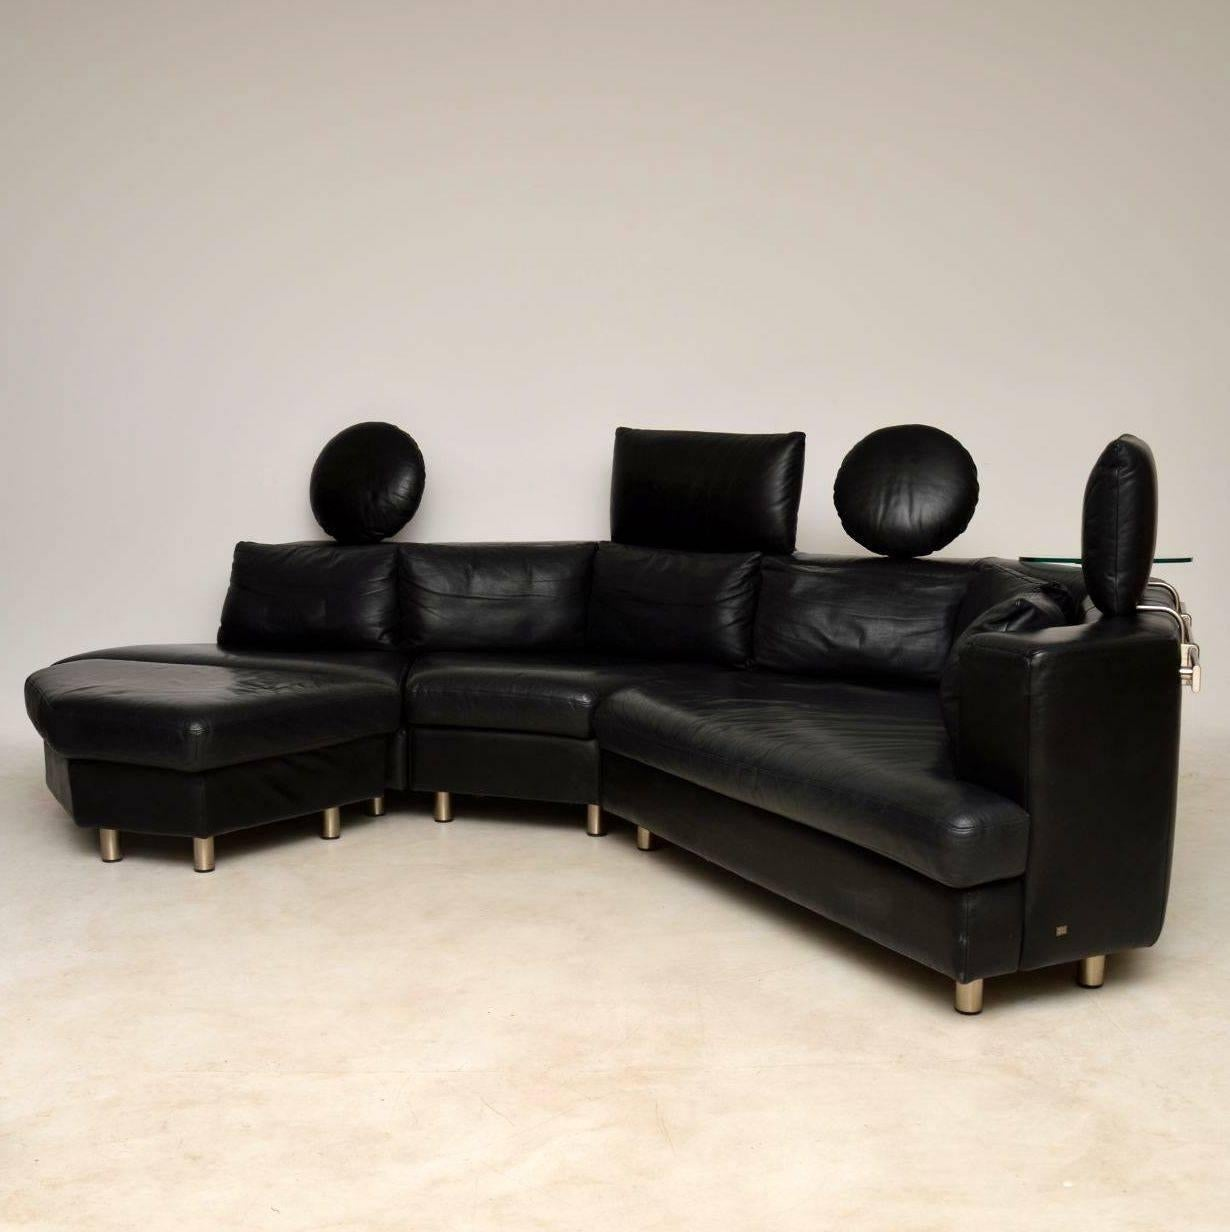 Mid Century Modern 1970s Vintage Leather Modular Sofa By Rolf Benz For Sale